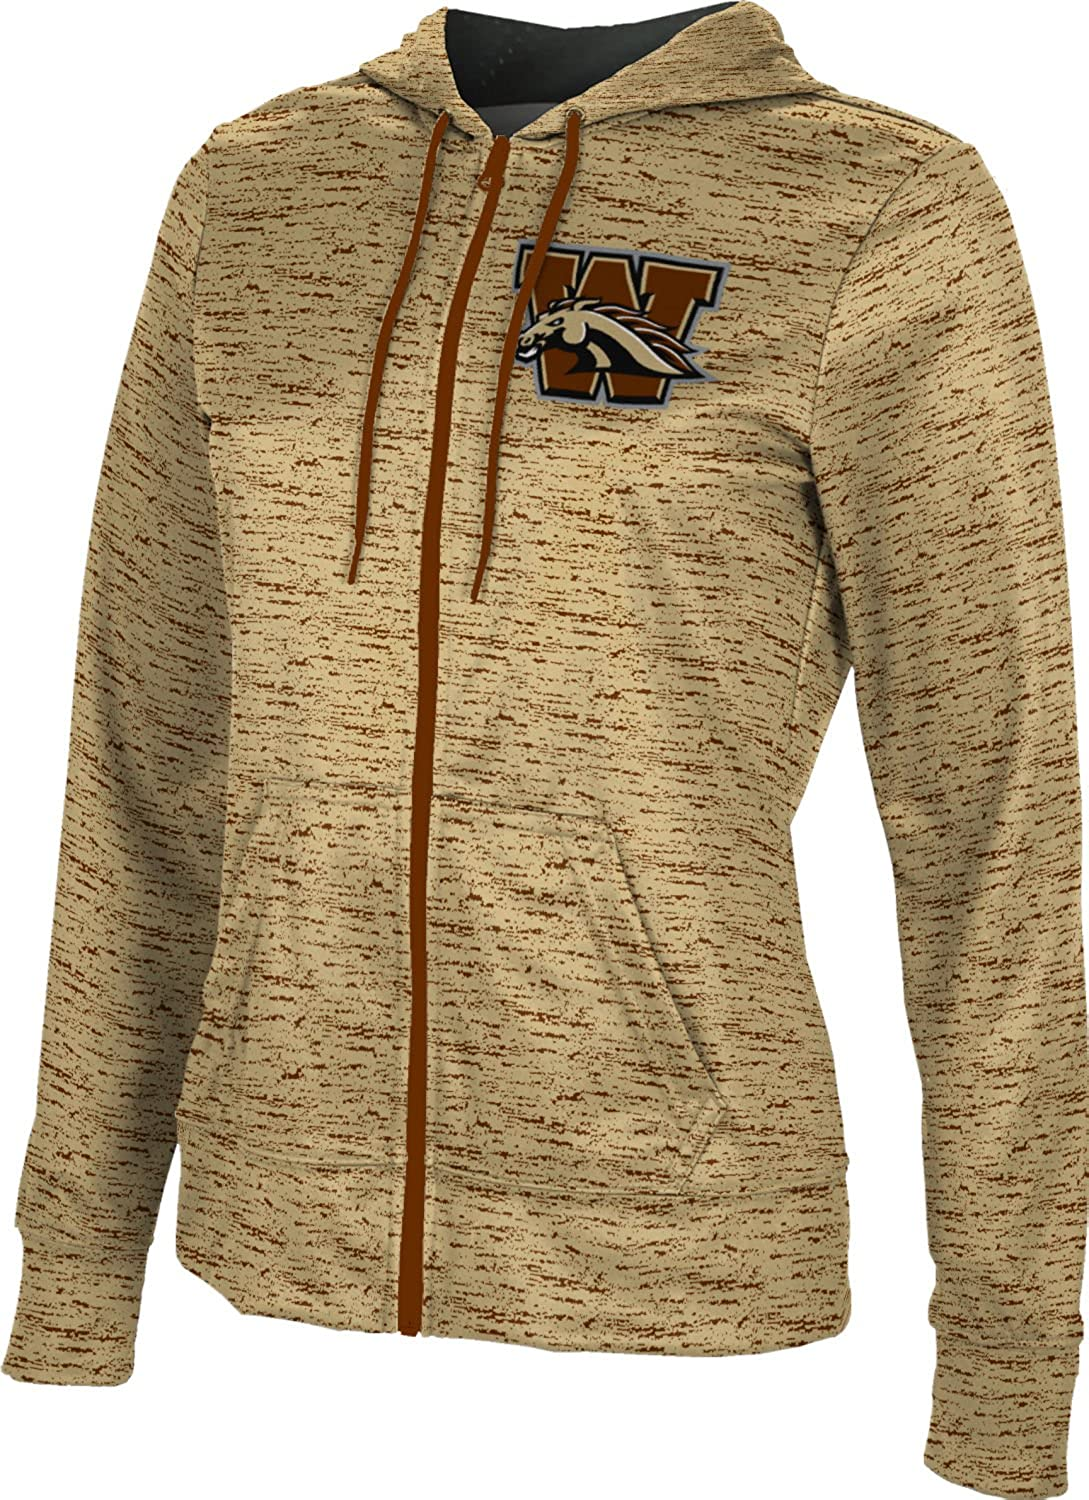 Western Michigan University Girls Pullover Hoodie School Spirit Sweatshirt Brushed